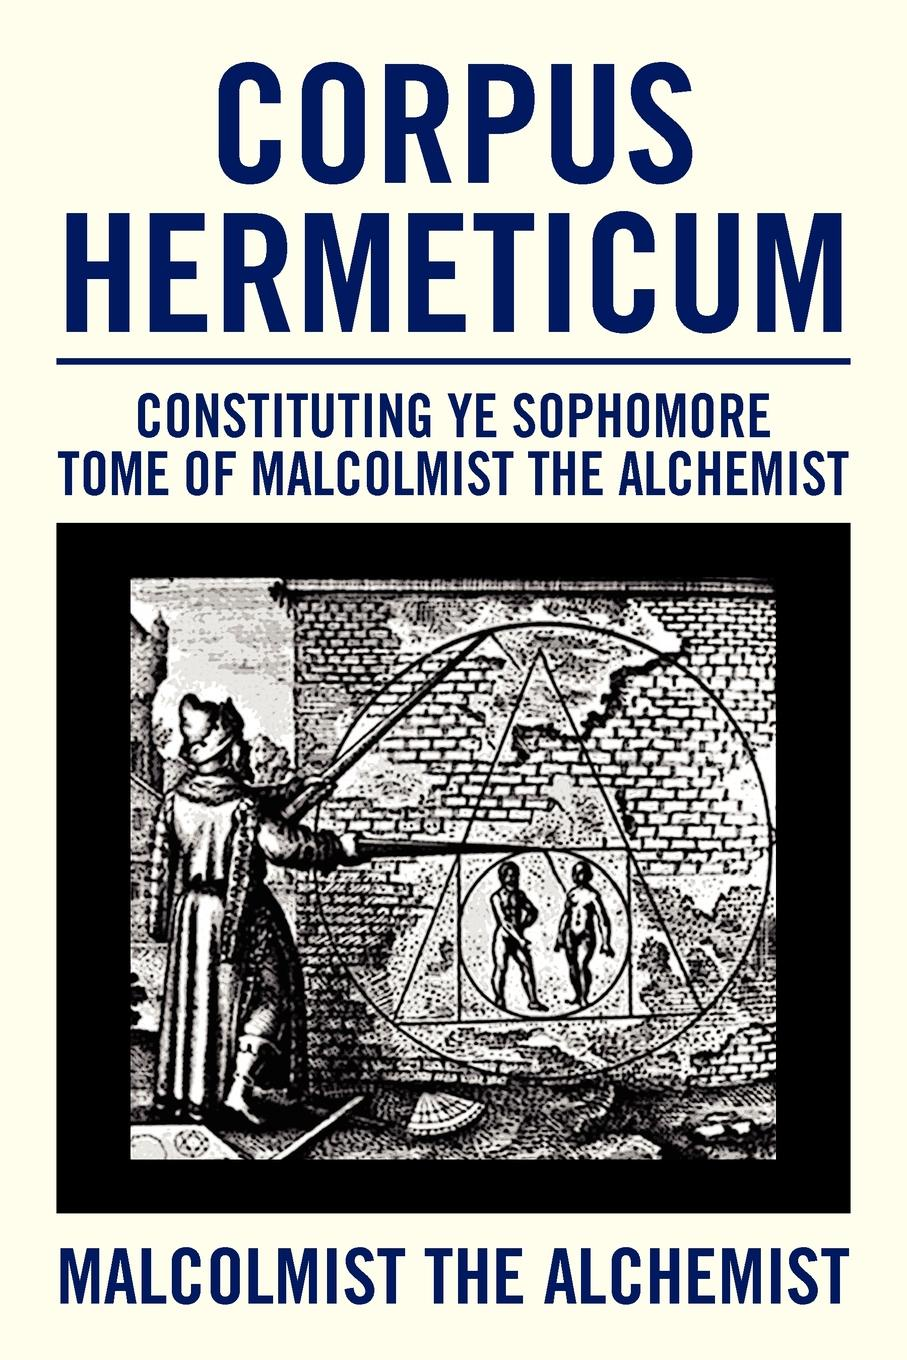 Malcolmist The Alchemist Corpus Hermeticum. Constituting Ye Sophomore Tome of Malcolmist the Alchemist coelho p the alchemist